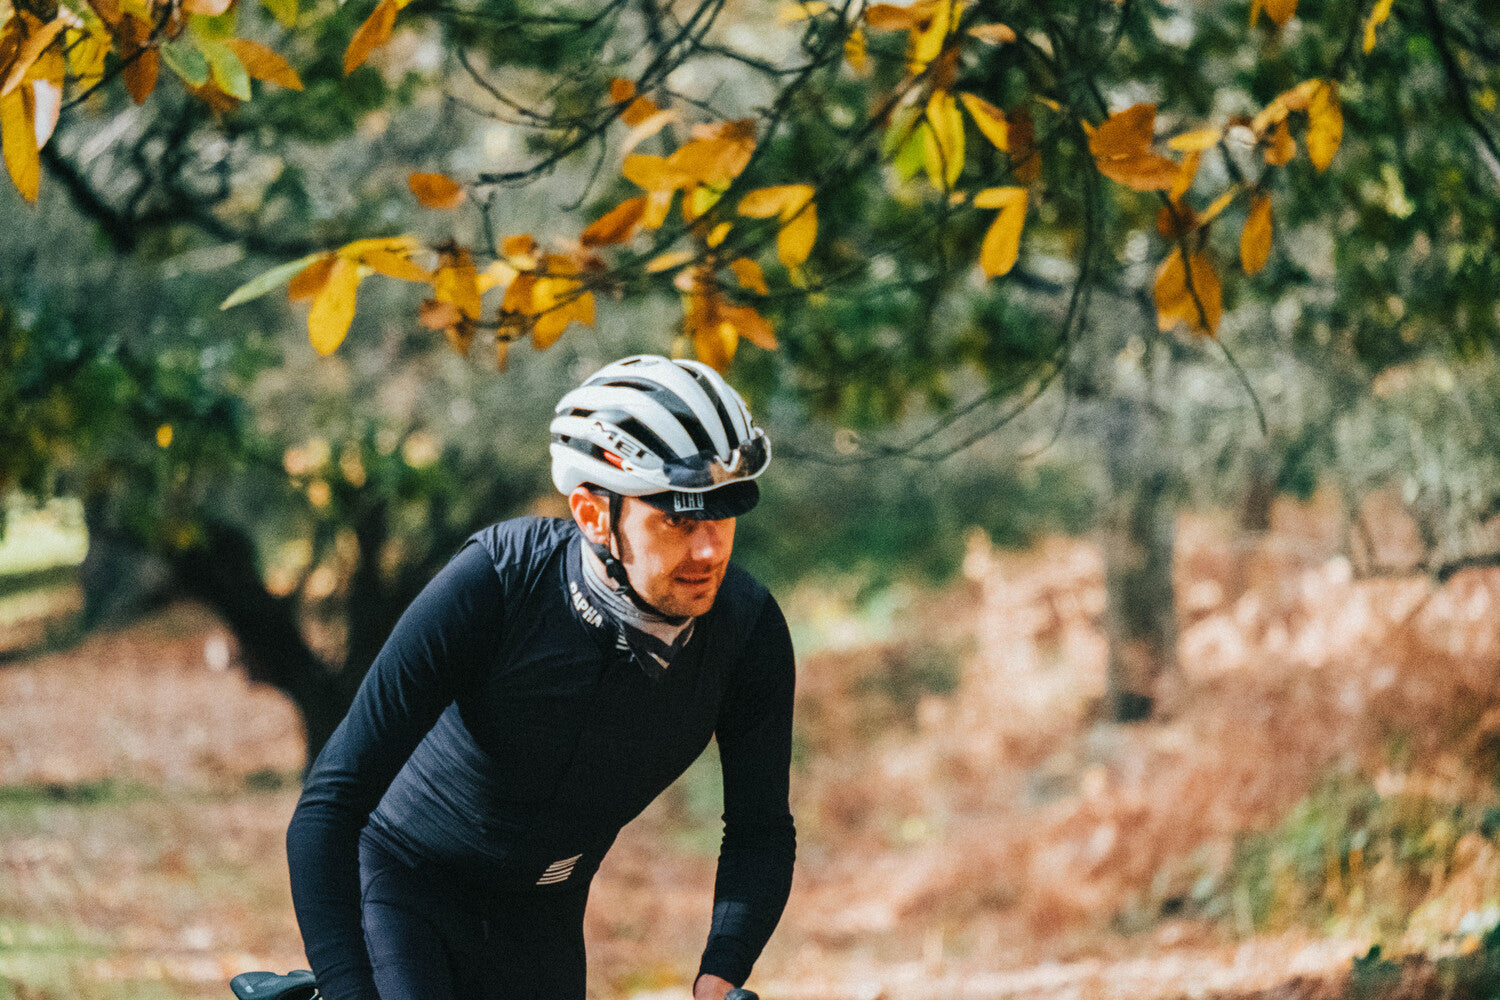 Nick Frendo: Riding and Smiling